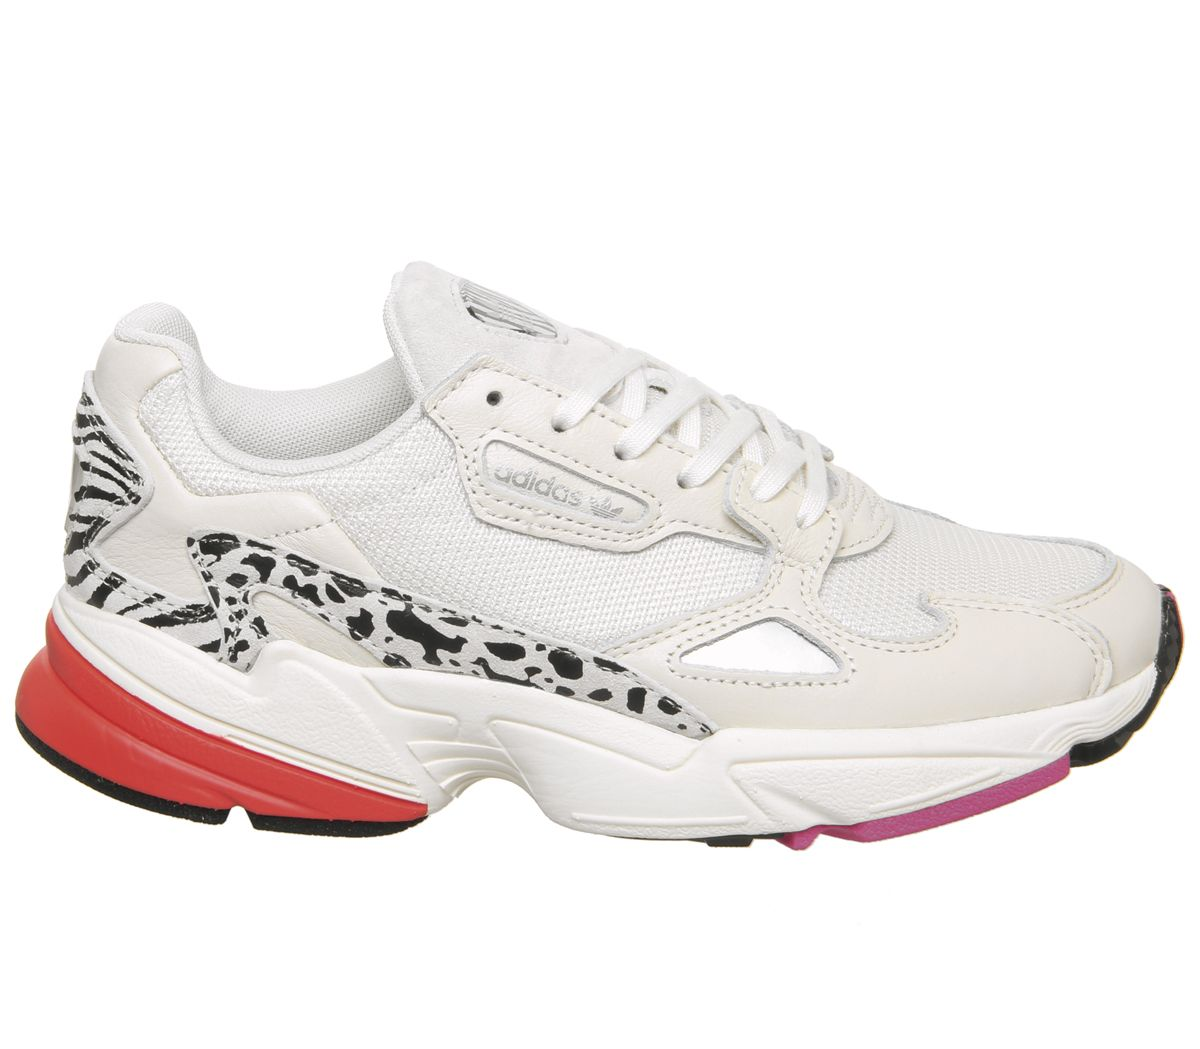 Details zu Womens Adidas Falcon Trainers Off White Shock Pink Silver Animal Trainers Shoes